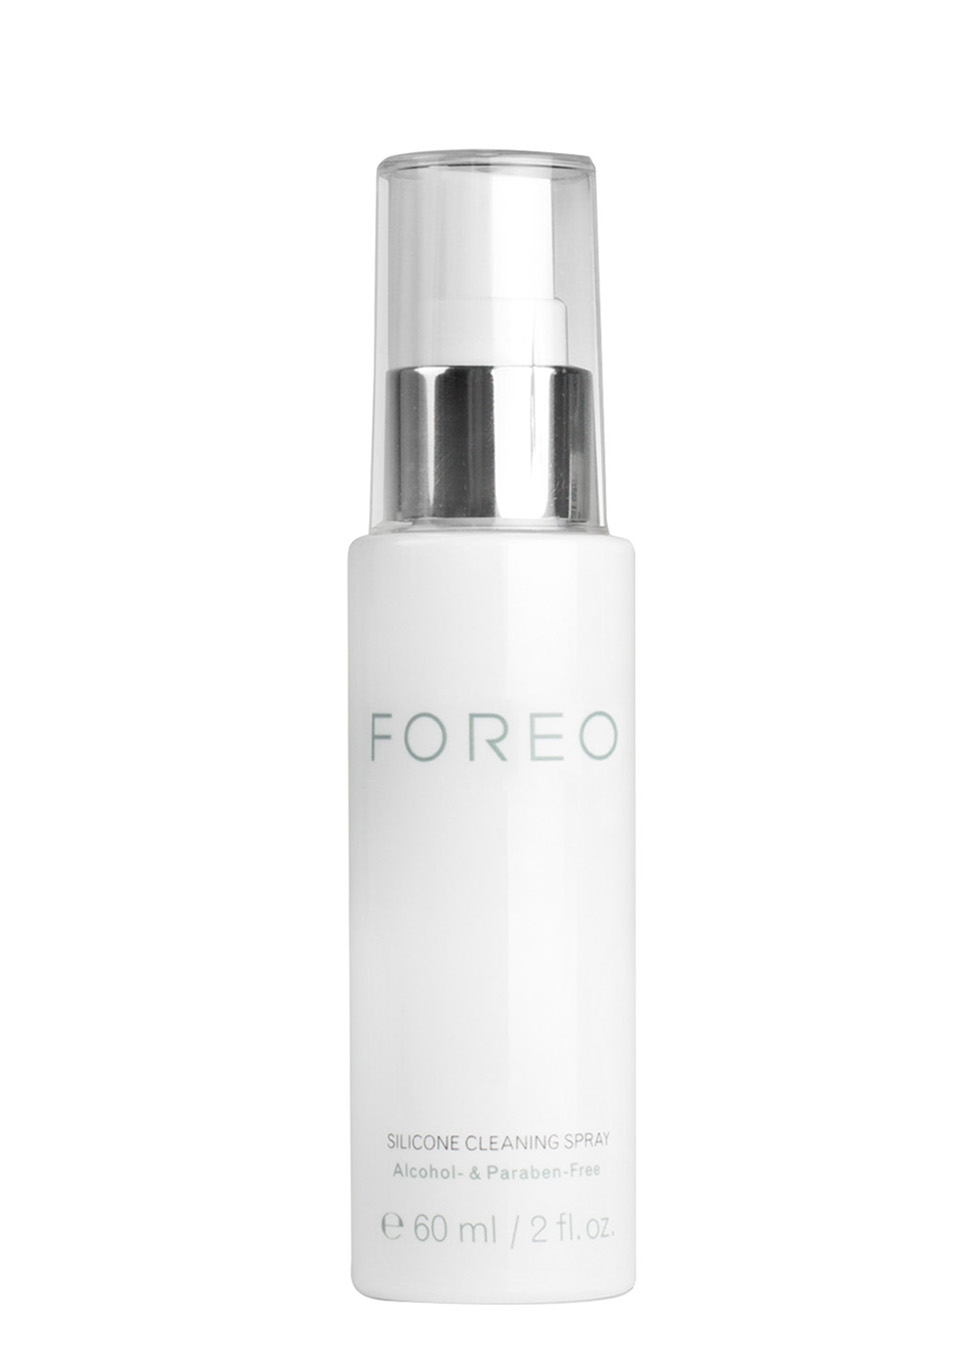 Silicone Cleansing Spray 60ml